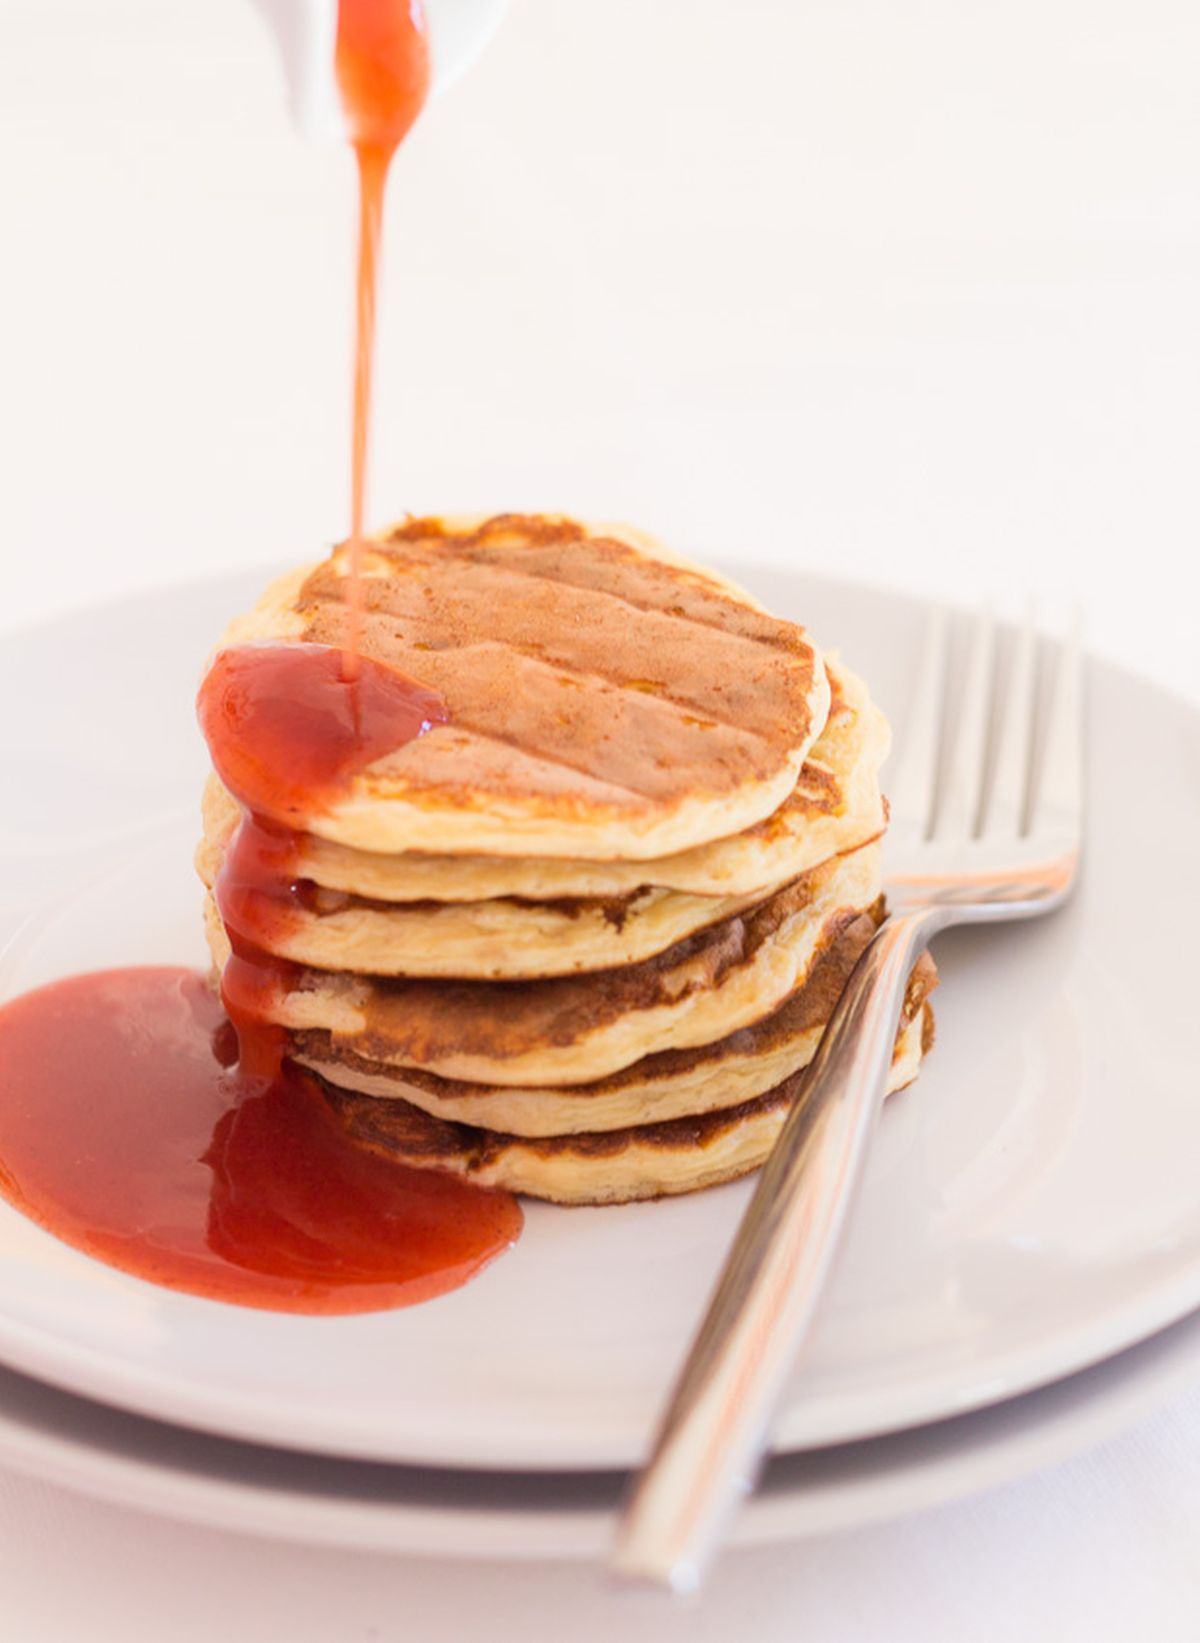 A stack of Scottish porridge oat pancakes on a plate with syrup being poured over.